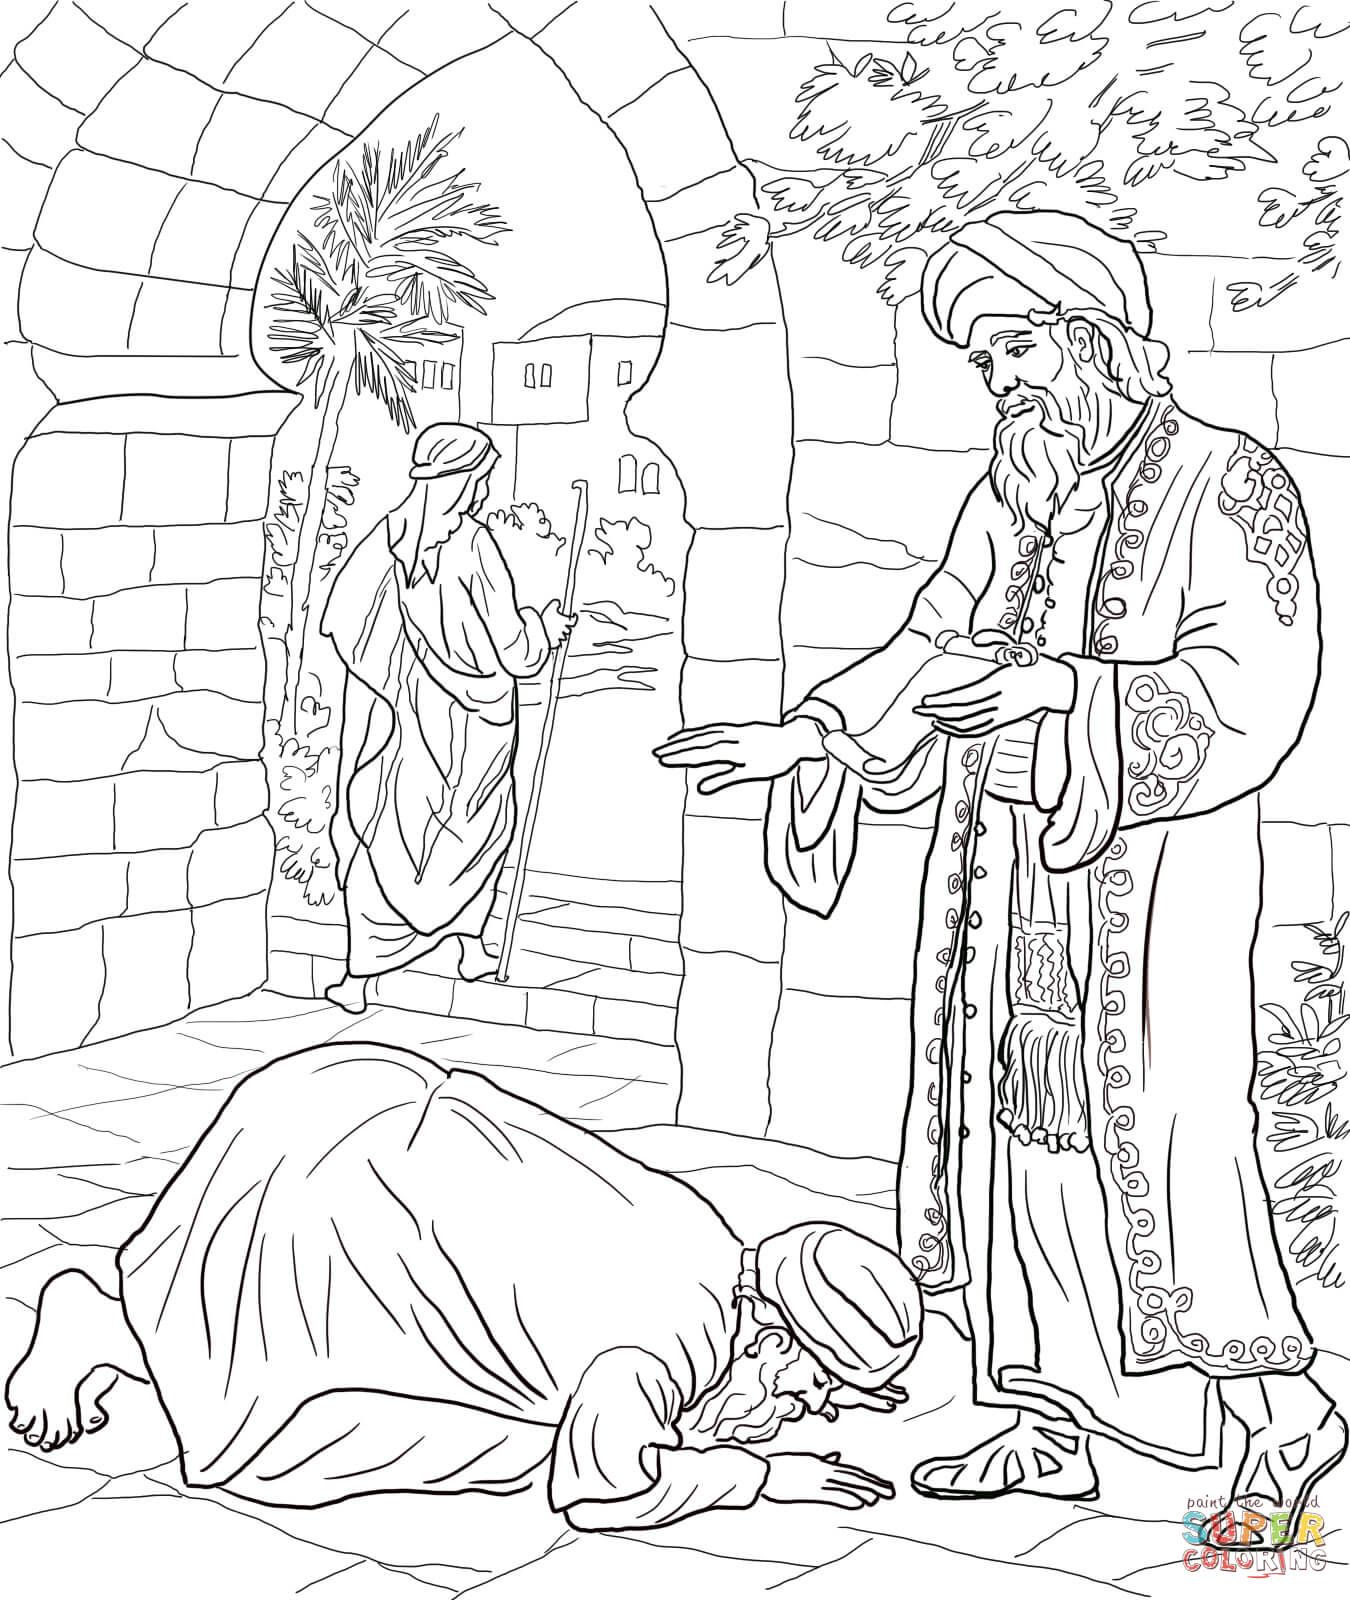 Parable of the Two Debtors coloring page from Jesus